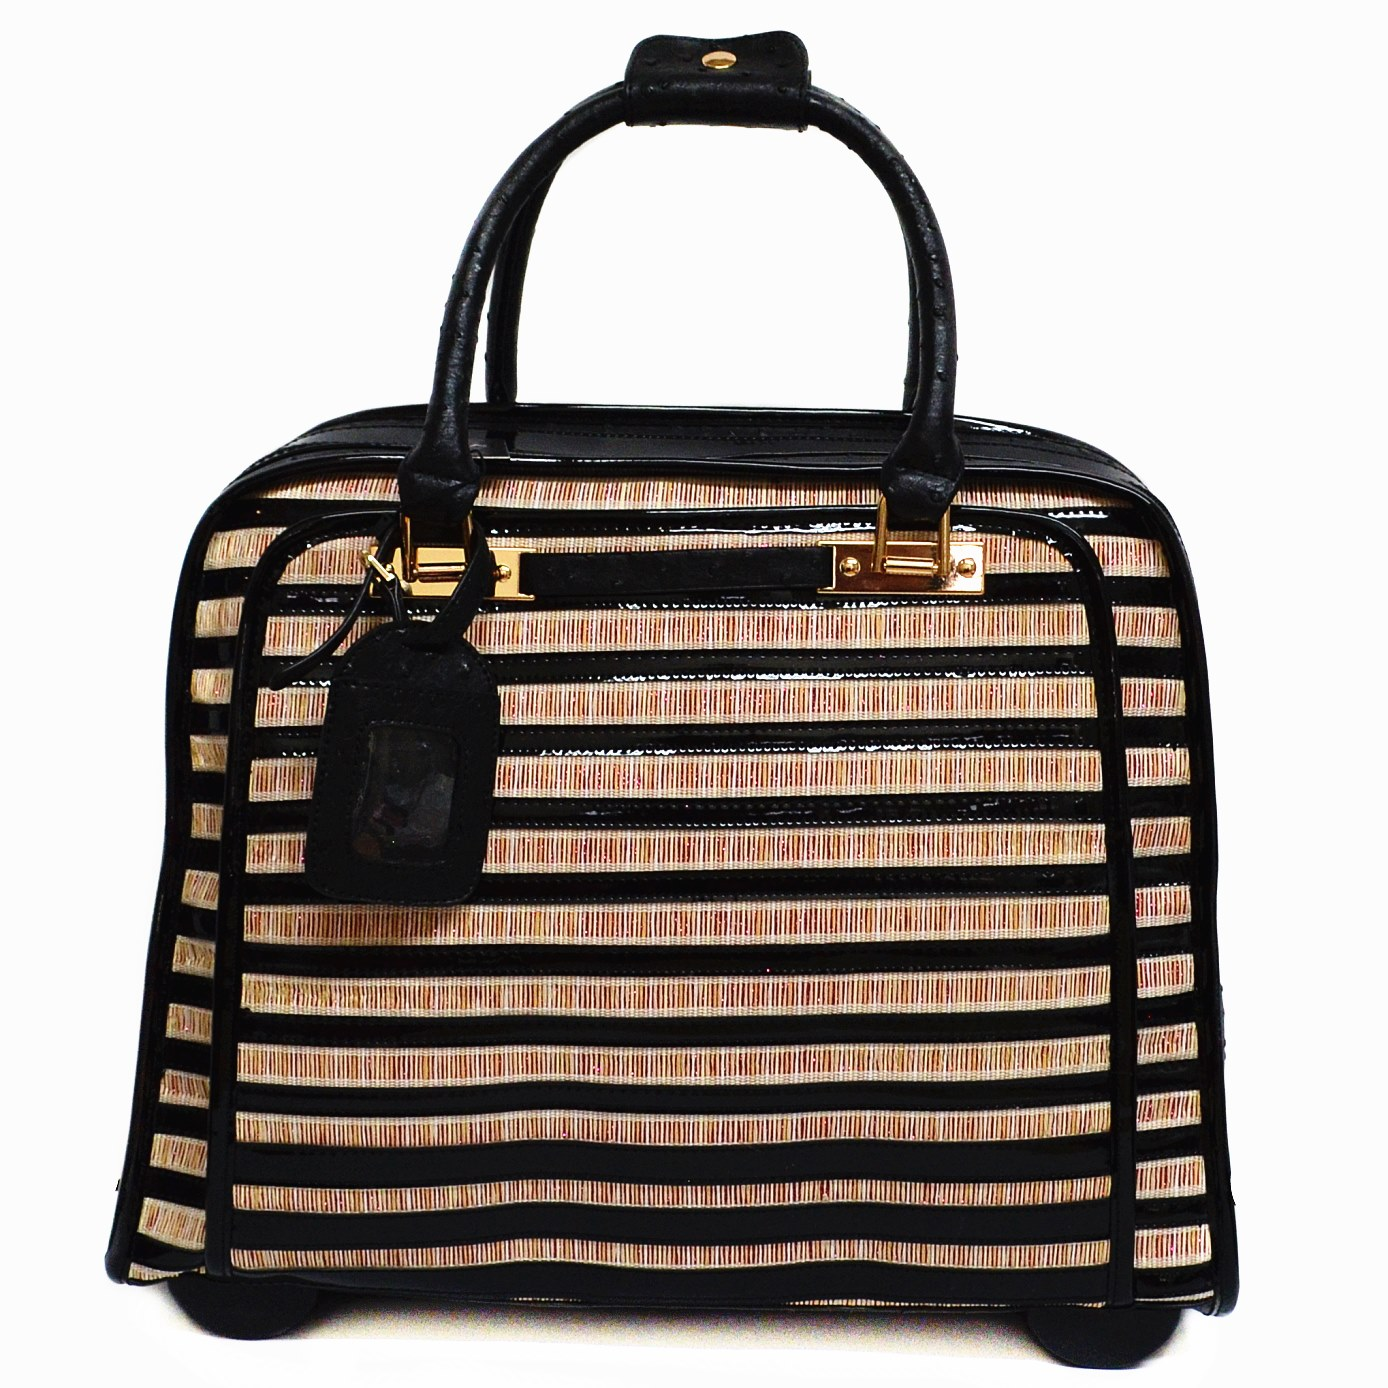 cf736d5a800b08 Best Travel Bag With Compartments   Stanford Center for Opportunity ...